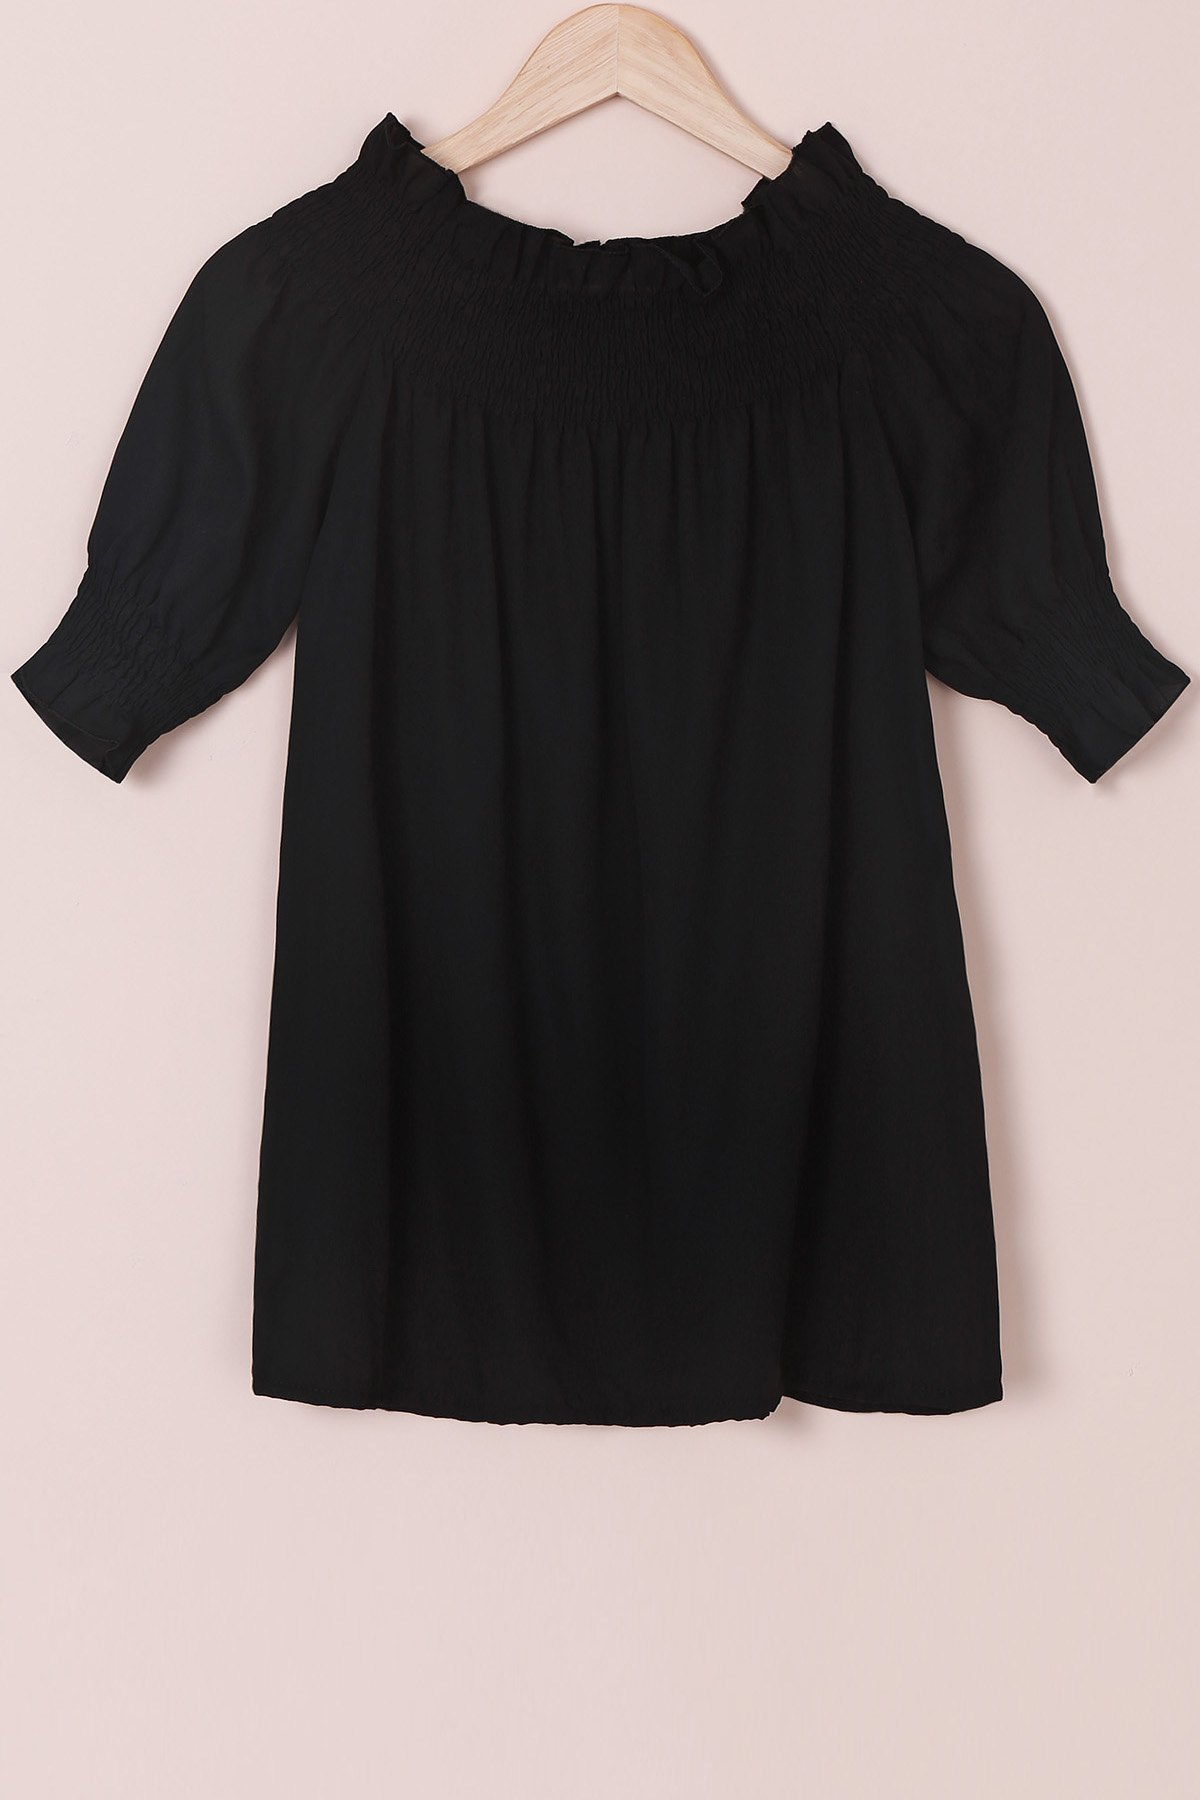 Trendy Off-The-Shoulder 3/4 Sleeve Solid Color Blouse For Women - BLACK S